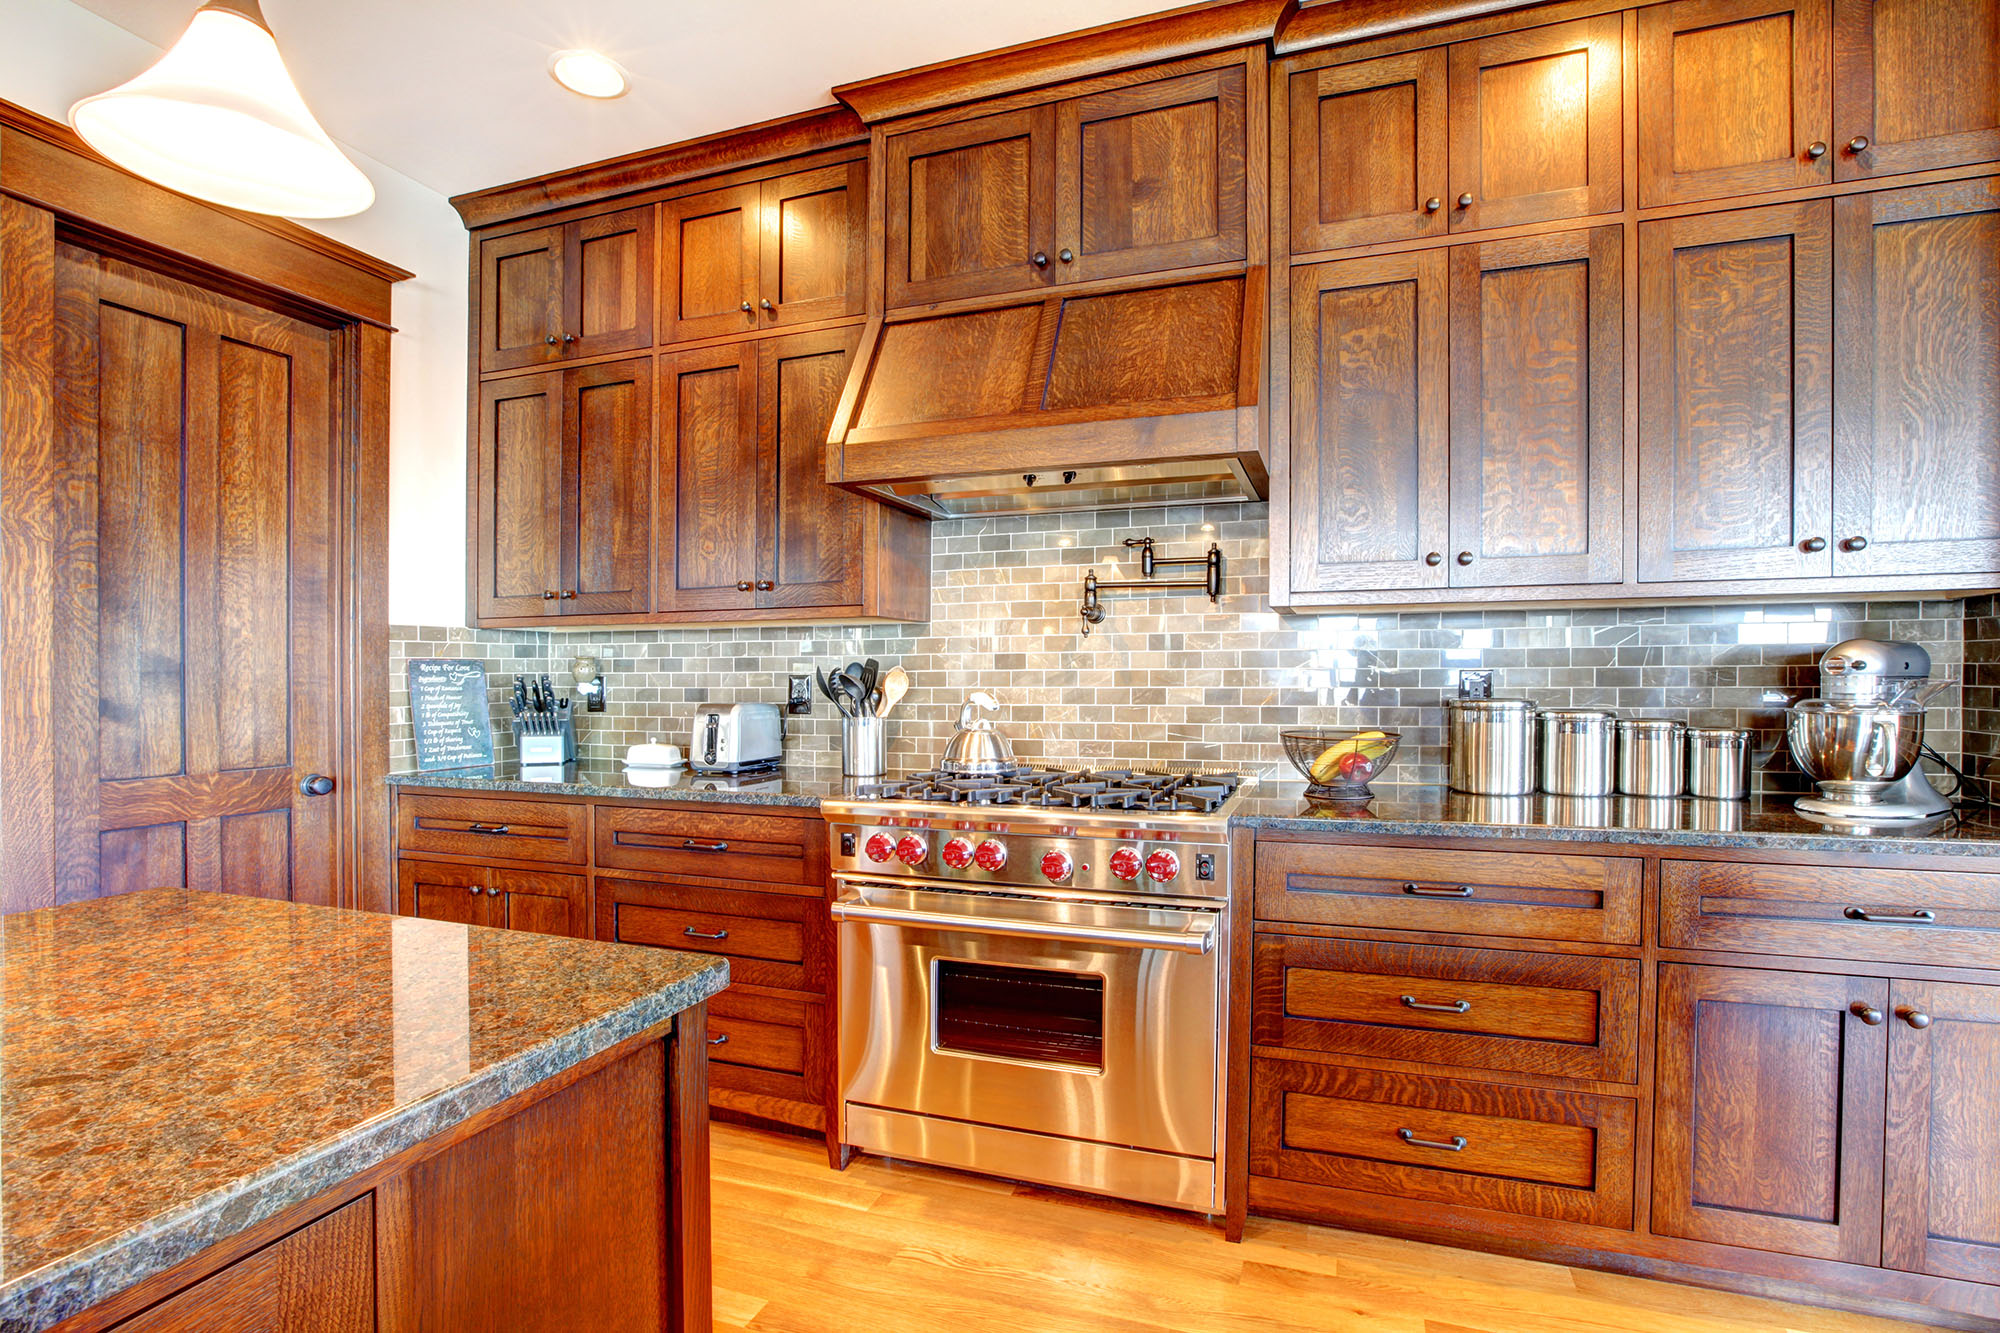 Kitchen Cabinets For Sale London Hickory Kitchens Hardwood Kitchen Cabinets For Sale